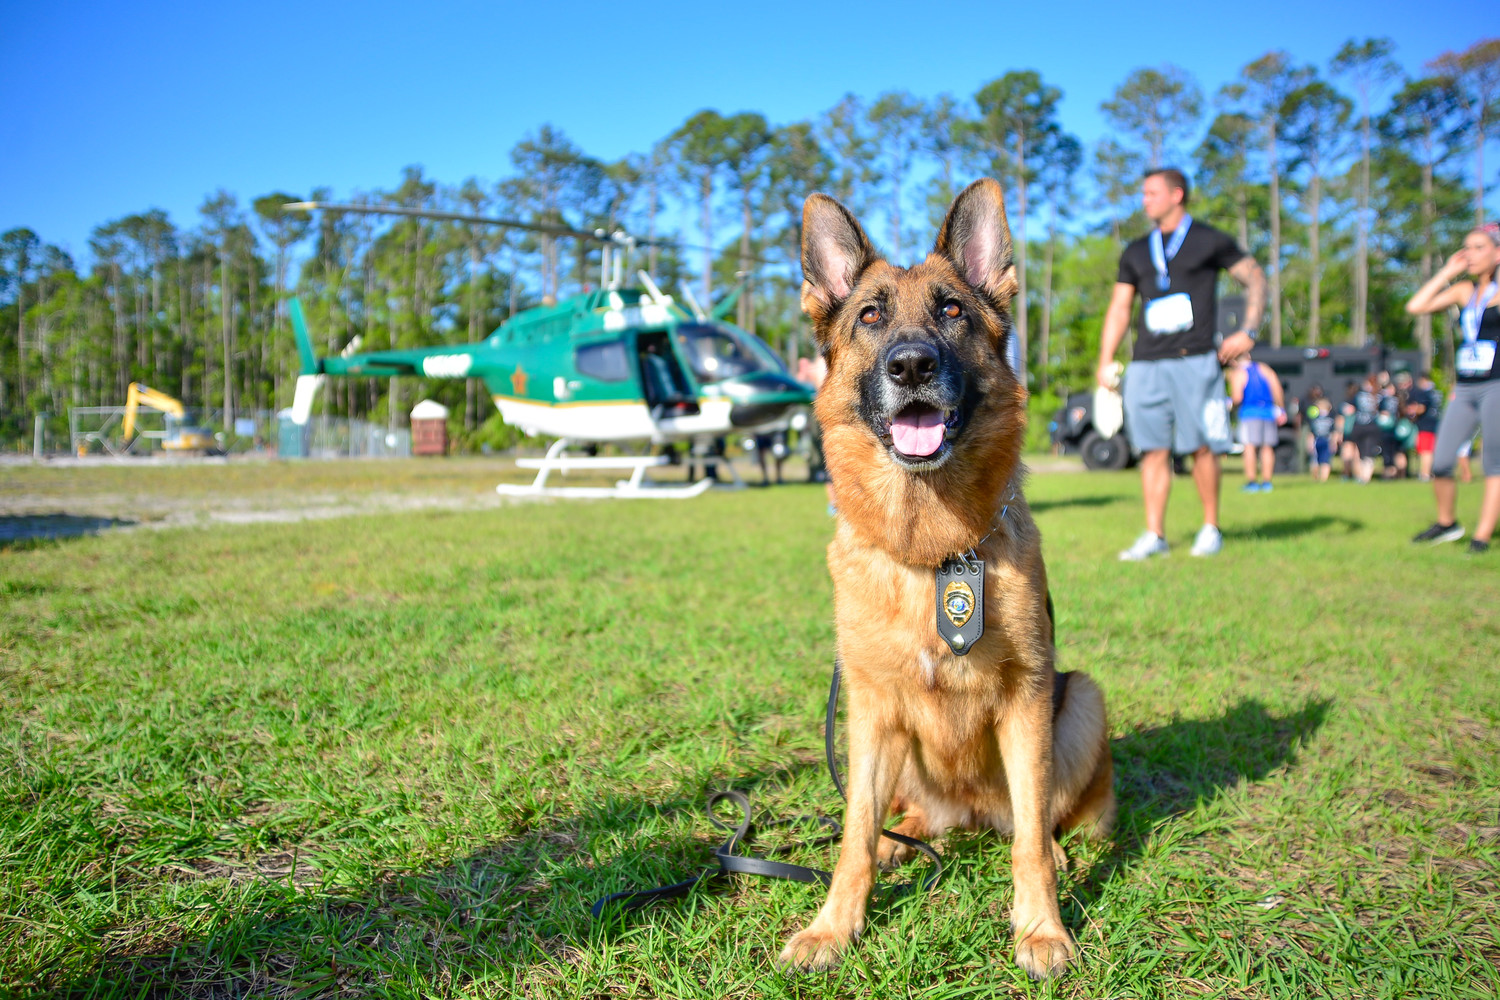 A K-9 Officer attends the K-9s United running events Saturday, April 14 in Nocatee.